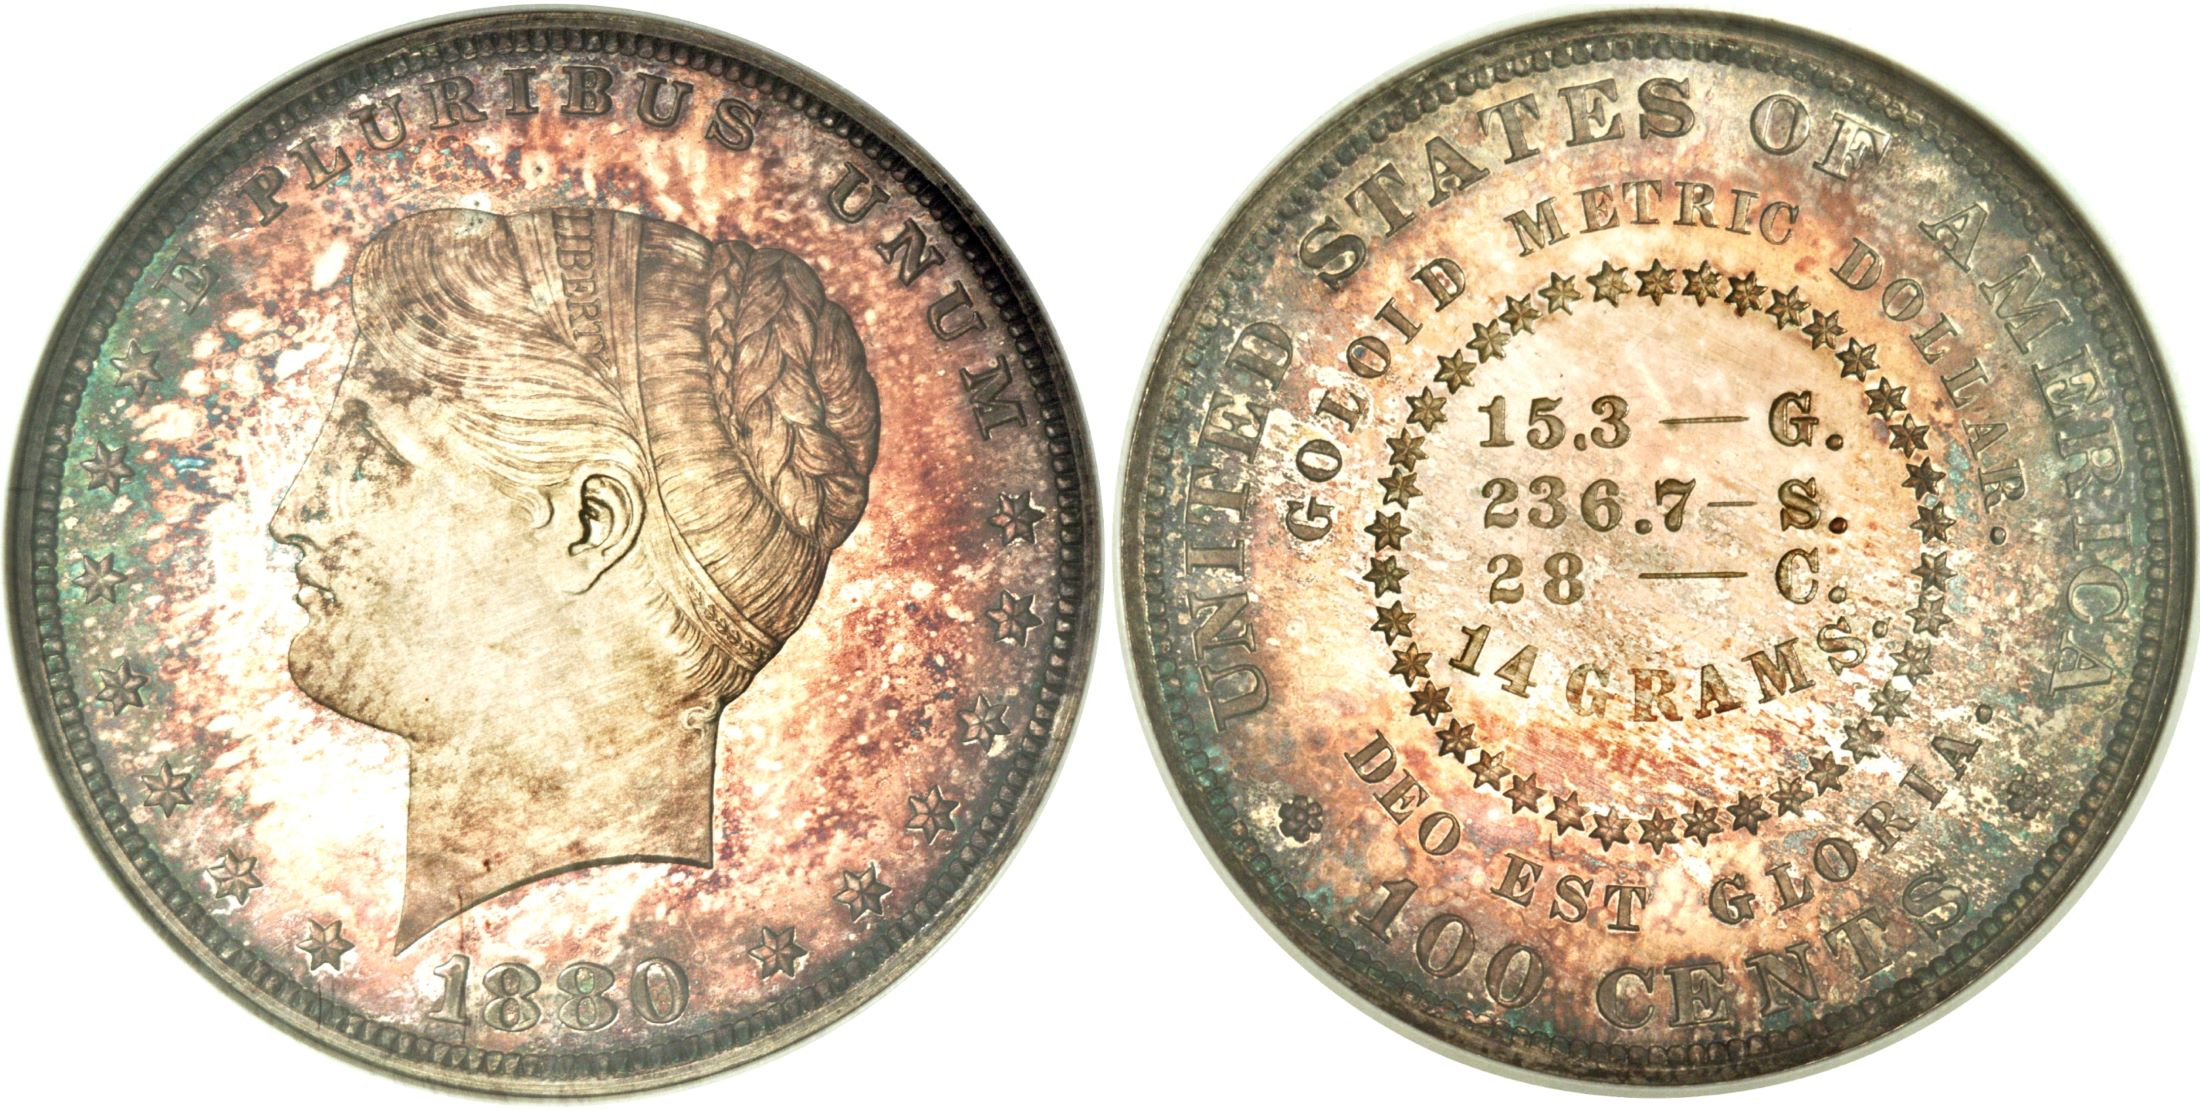 """PR65 estimated grade<BR>Image courtesy of <a href=""""http://www.ha.com"""" target=""""_blank"""">Heritage Numismatic Auctions</a>"""